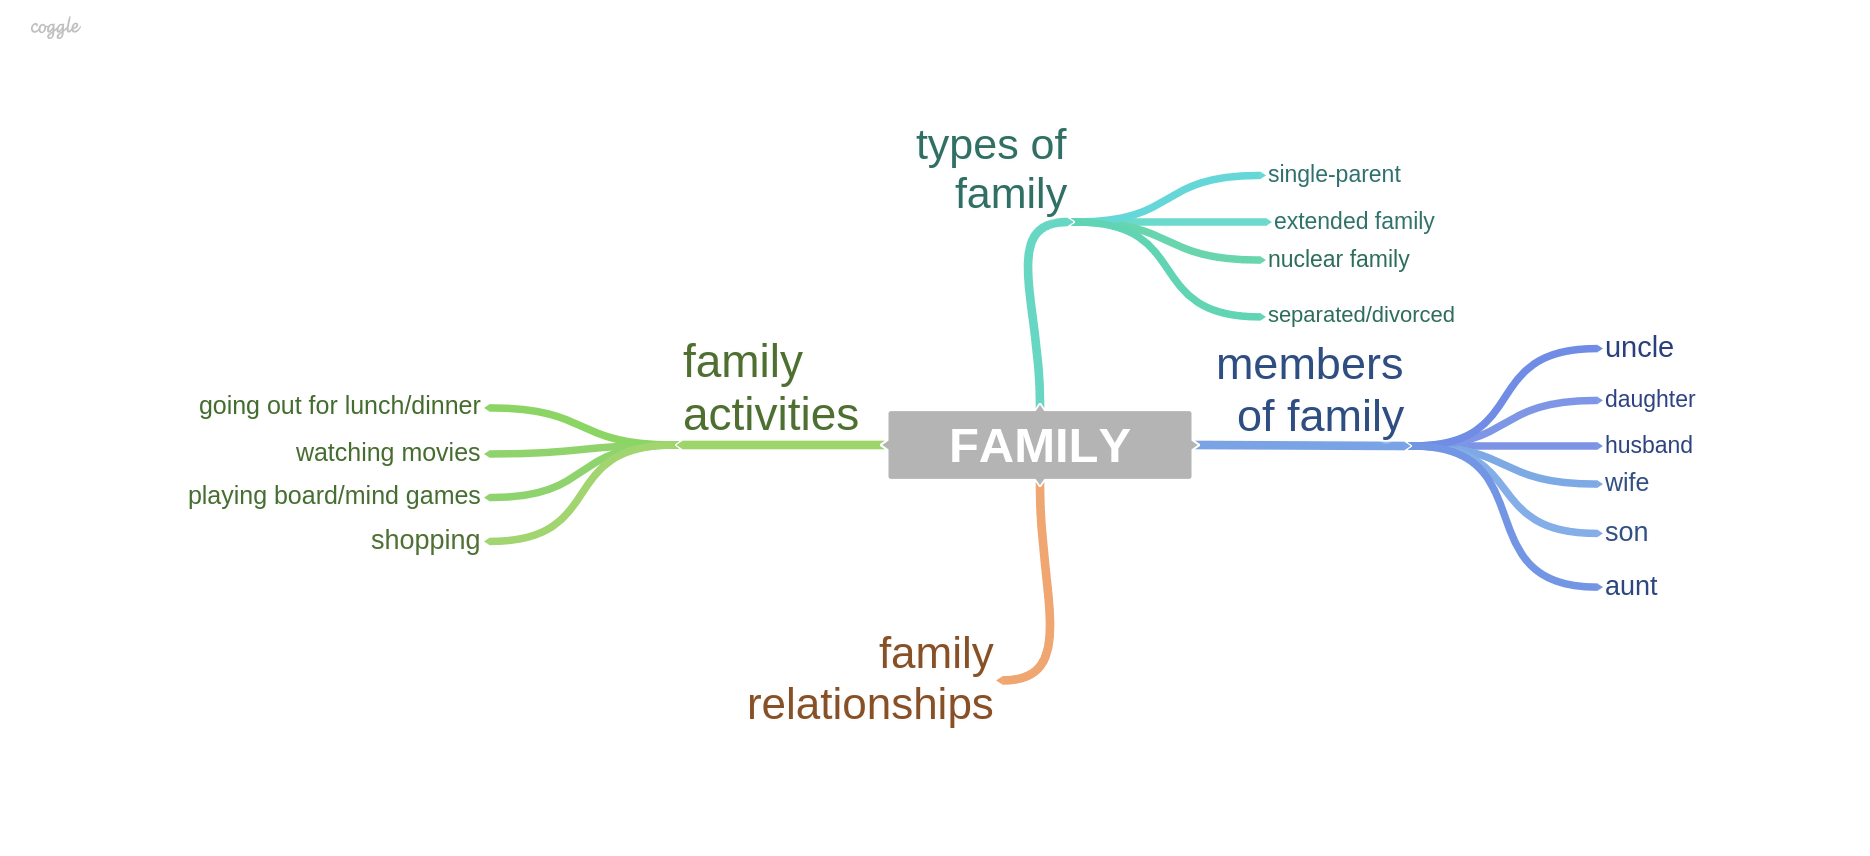 Family sample answers and topic vocabulary for ielts speaking exam family sample questions and answers for ielts speaking exam ccuart Image collections